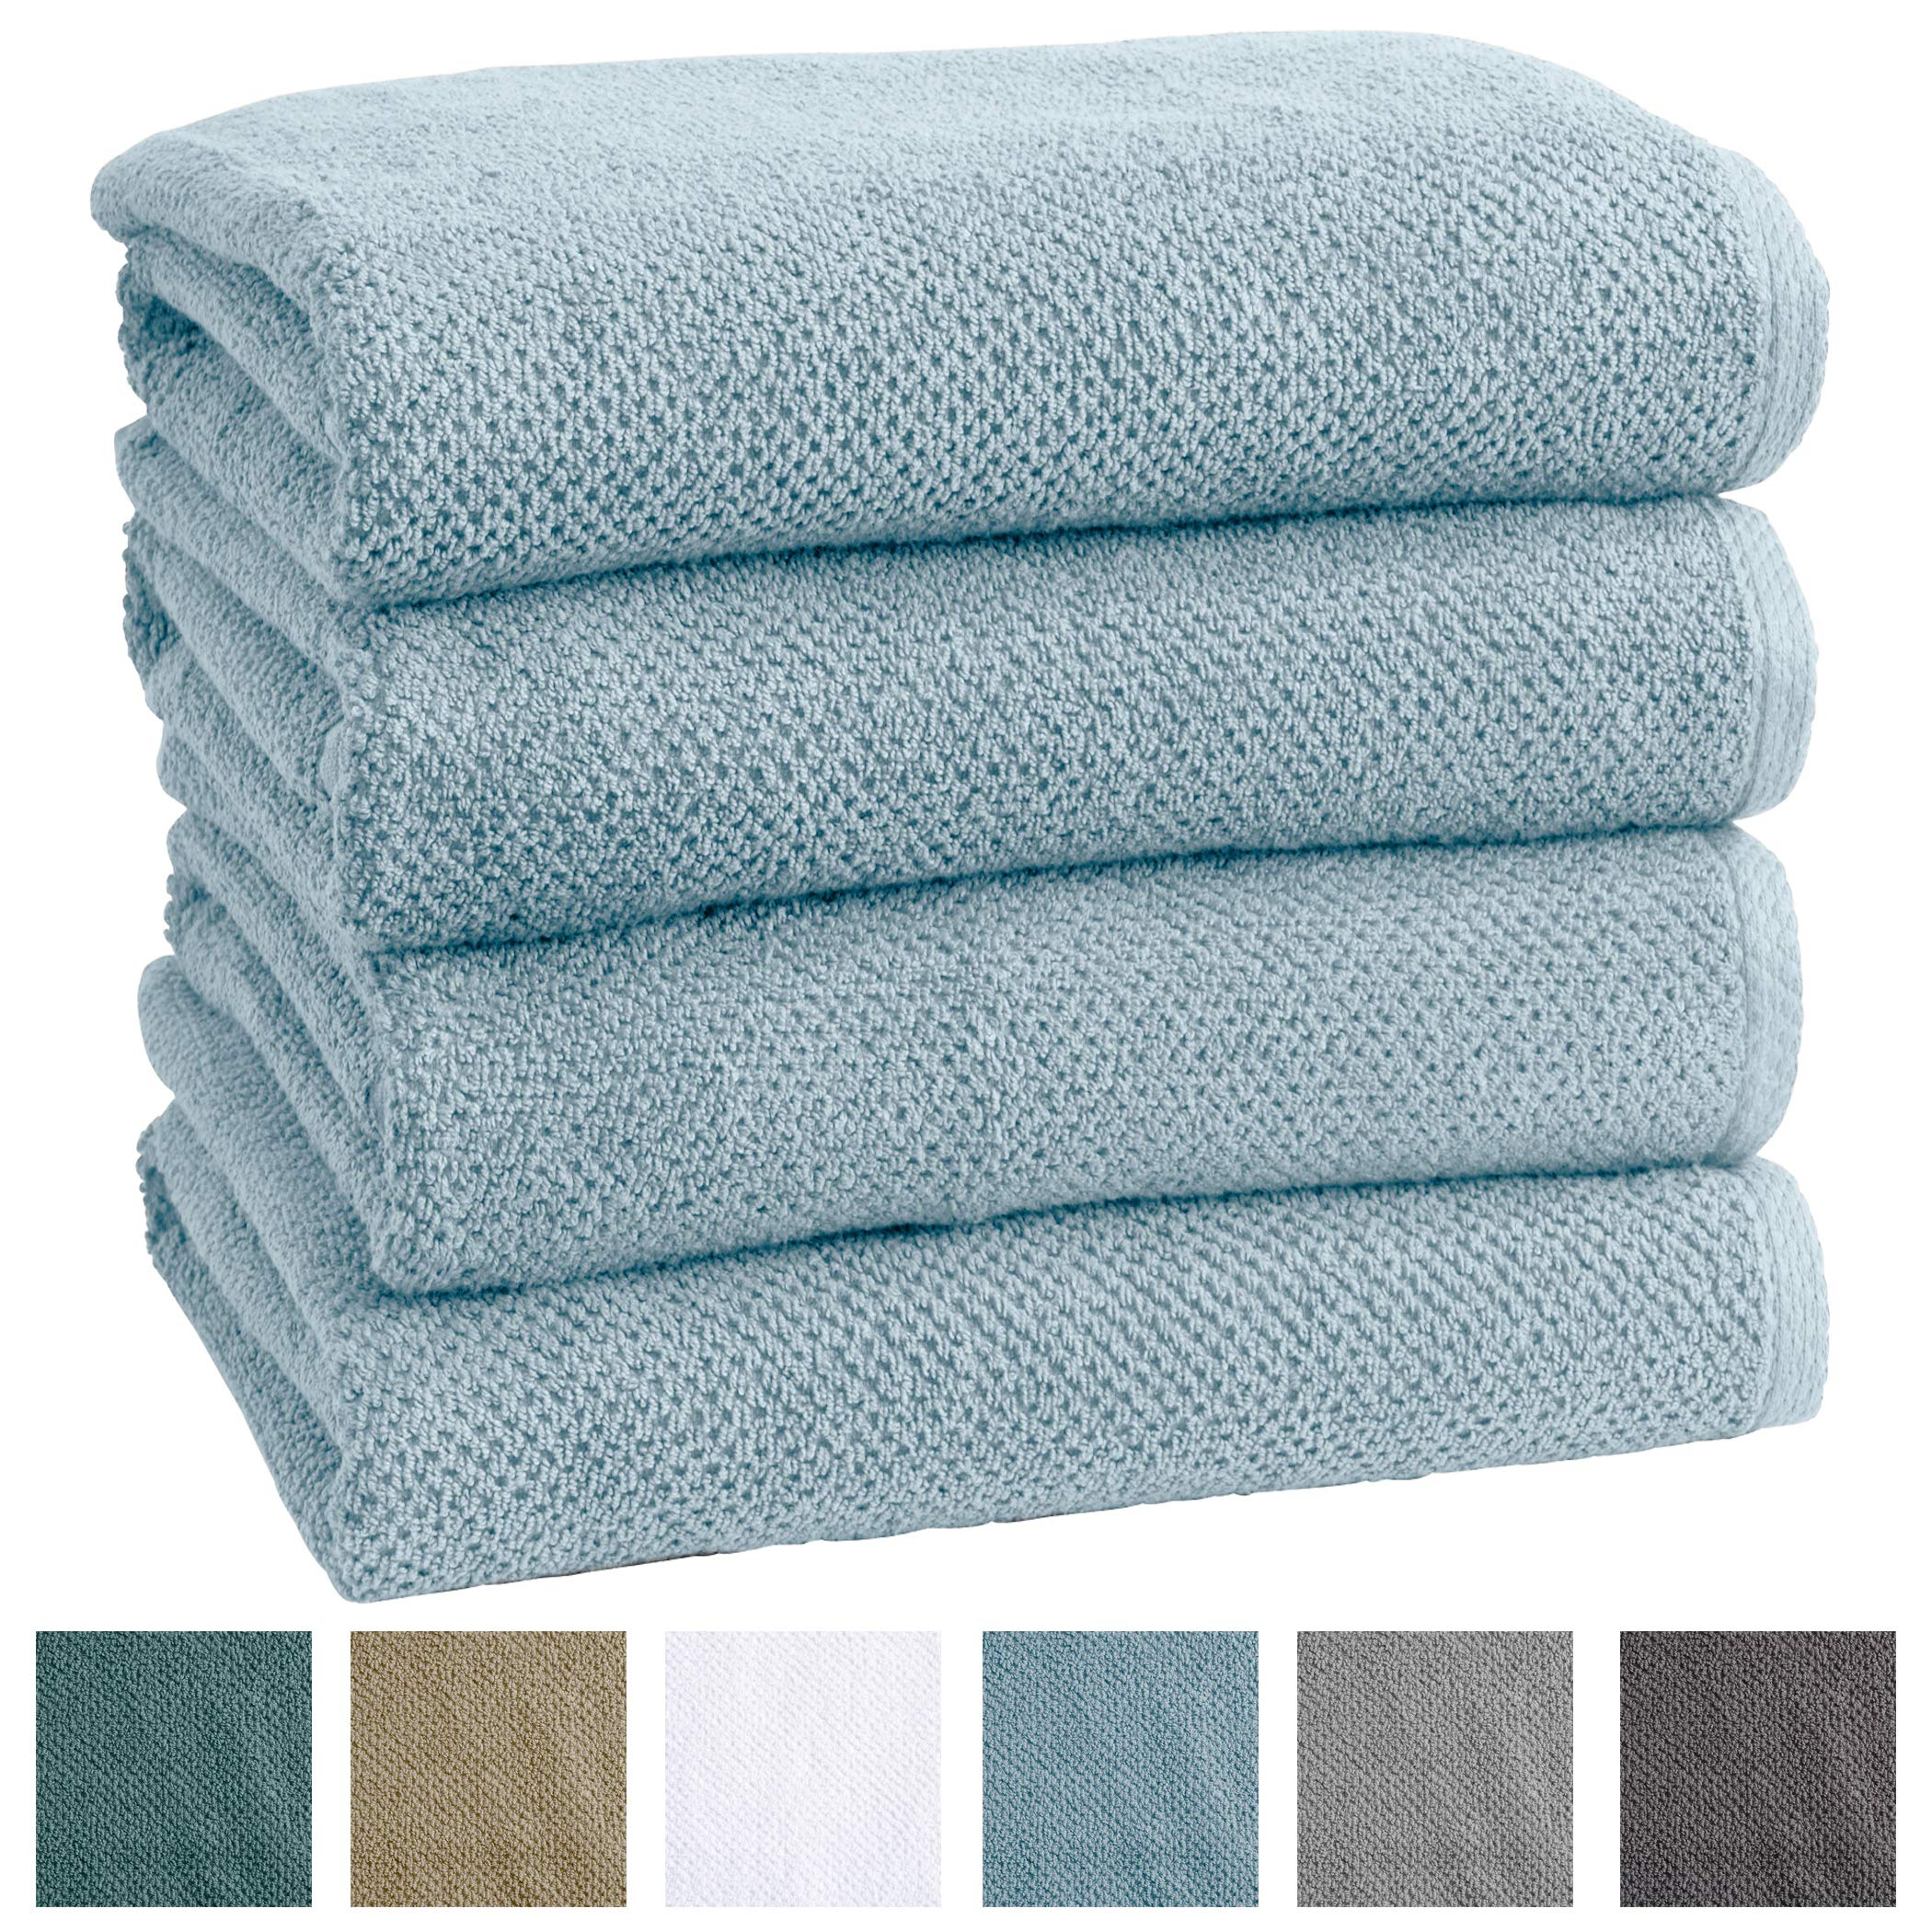 Great Bay Home 4-Pack 100% Cotton, Ultra-Absorbent Textured Bath Towels. 6 Elegant Solid Colors. Popcorn Weave. Acacia Collection. (Bath 4pk, Sterling Blue)